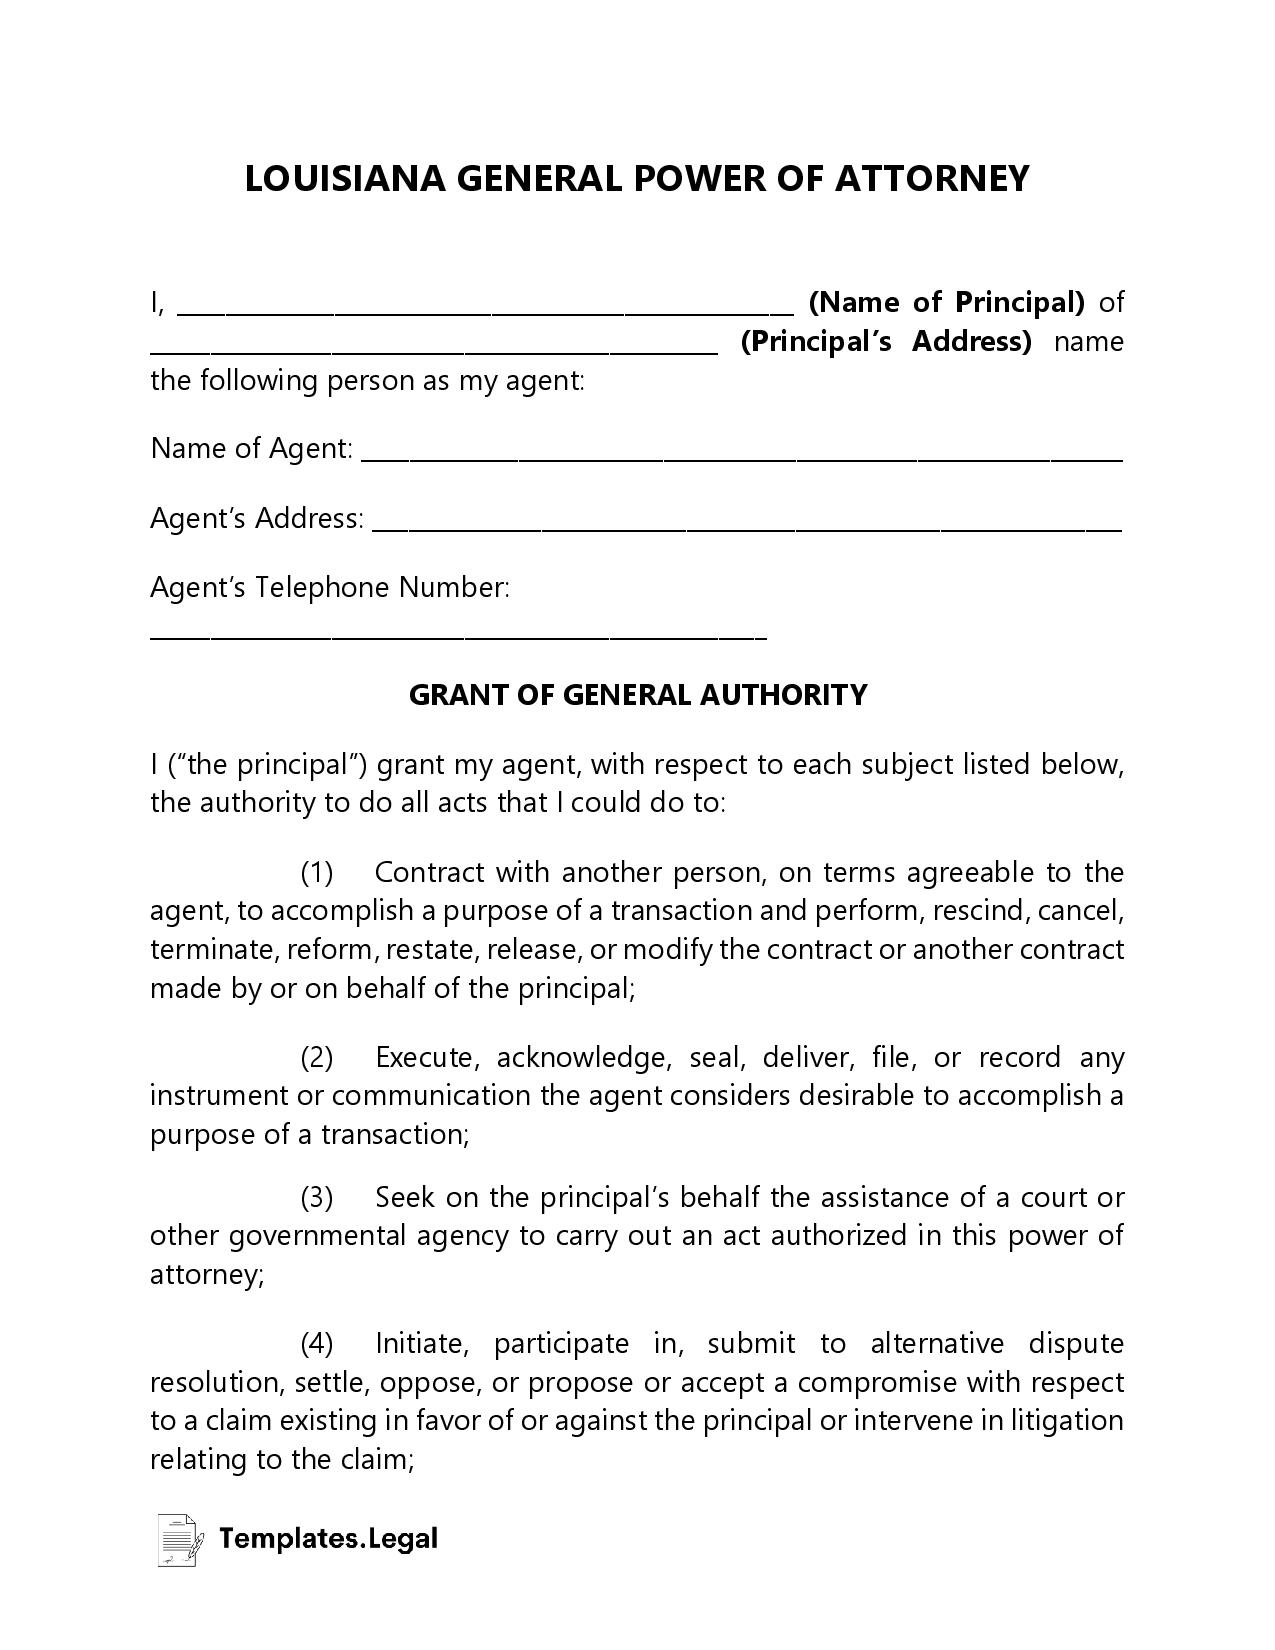 Louisiana General Power of Attorney - Templates.Legal